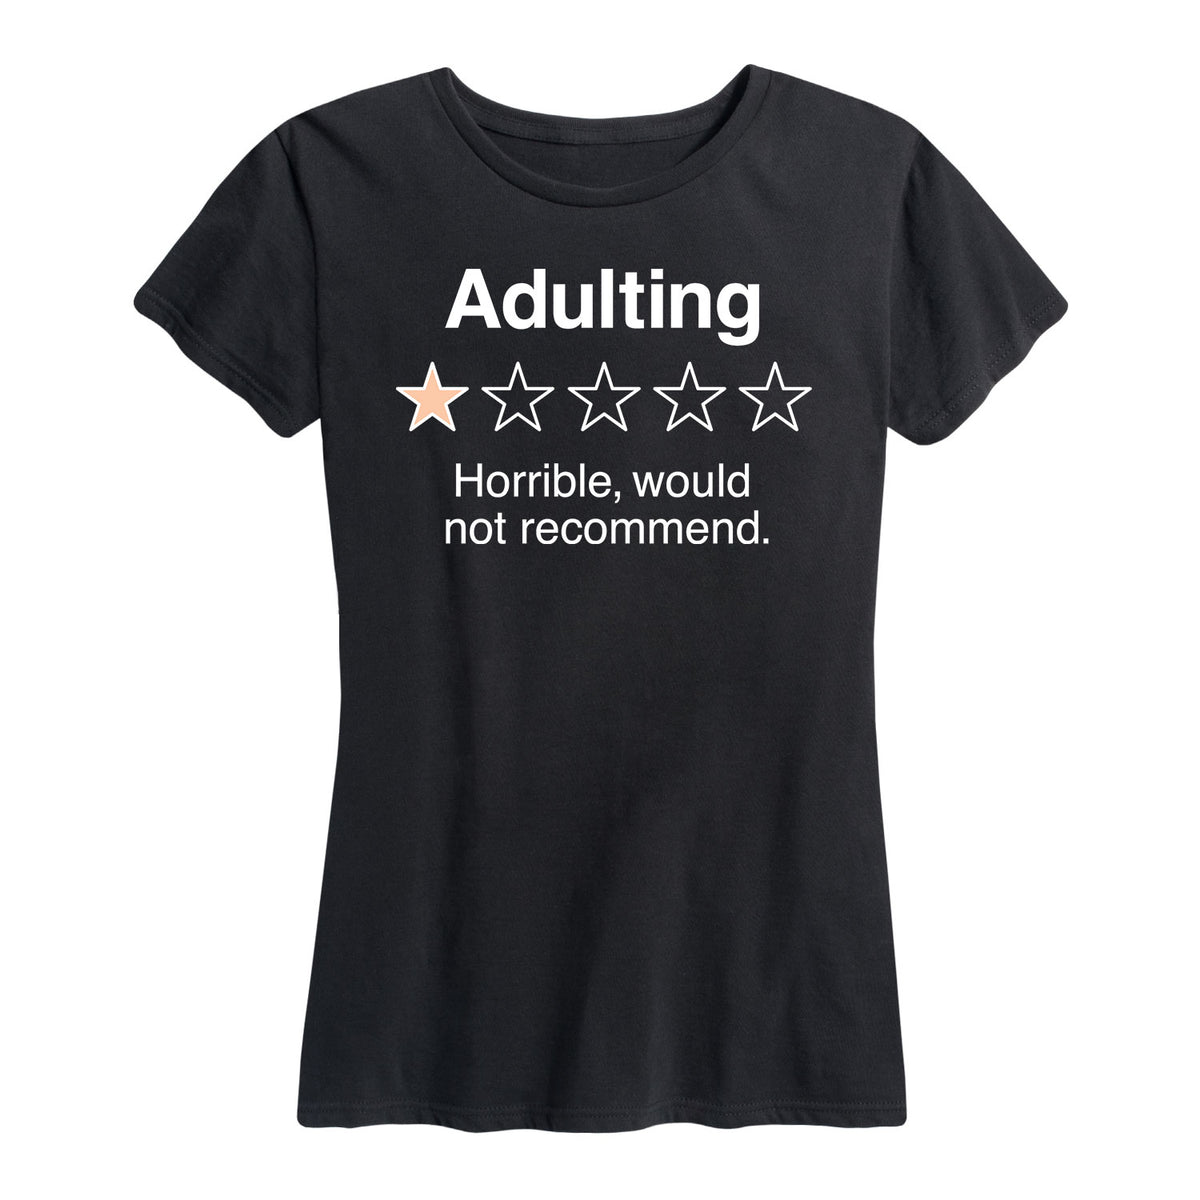 Adulting Would Not Recommend - Women's Short Sleeve T-Shirt